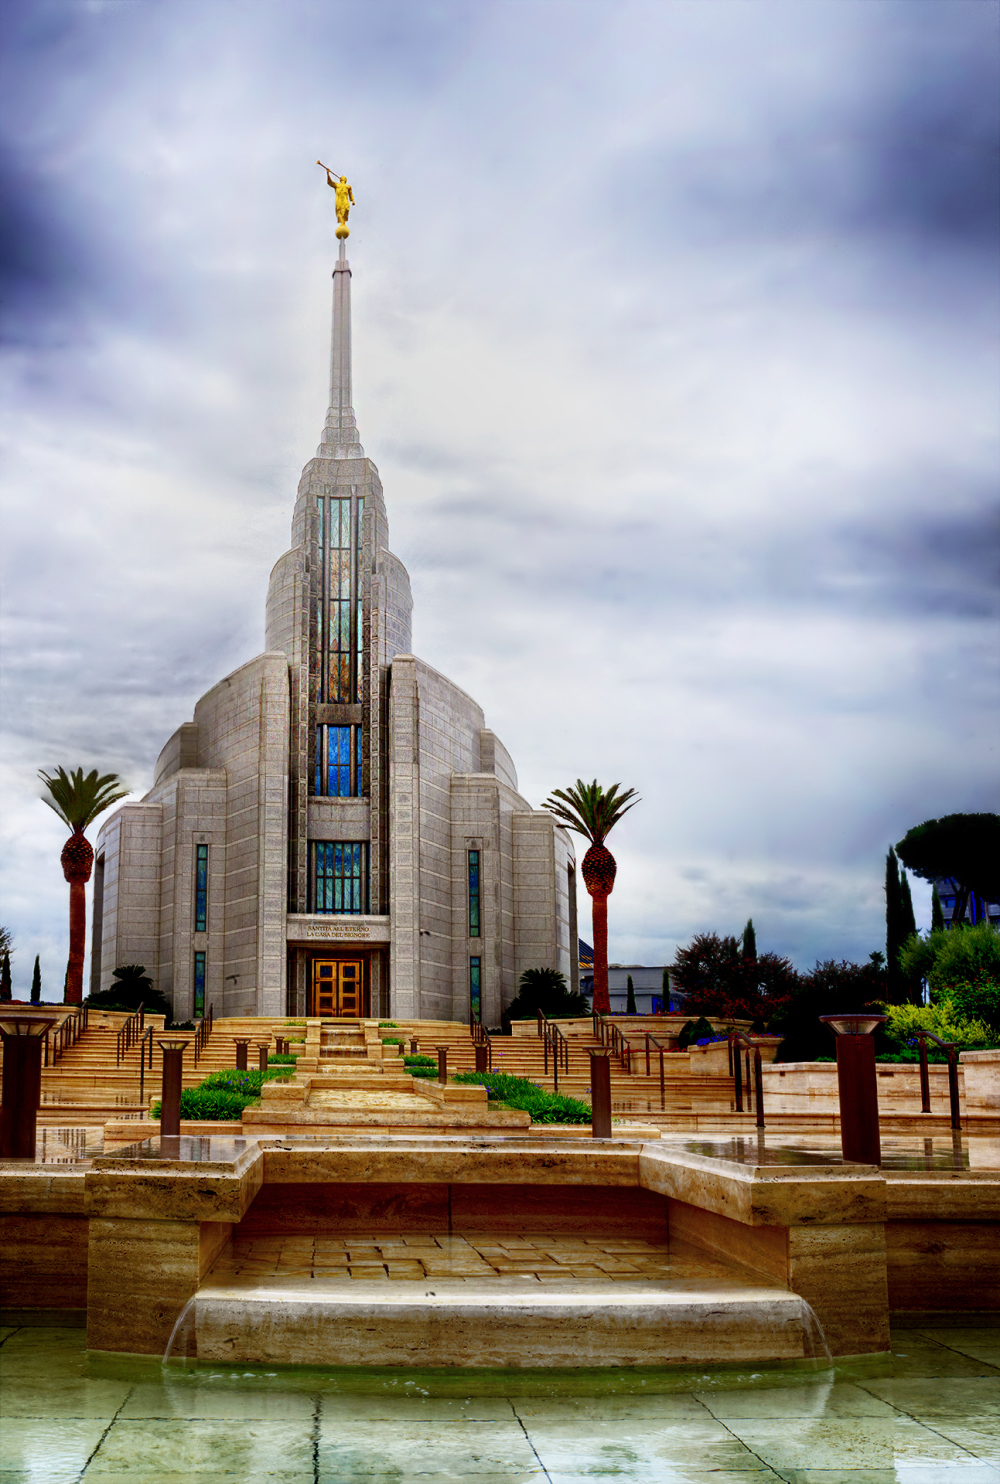 The Rome Temple